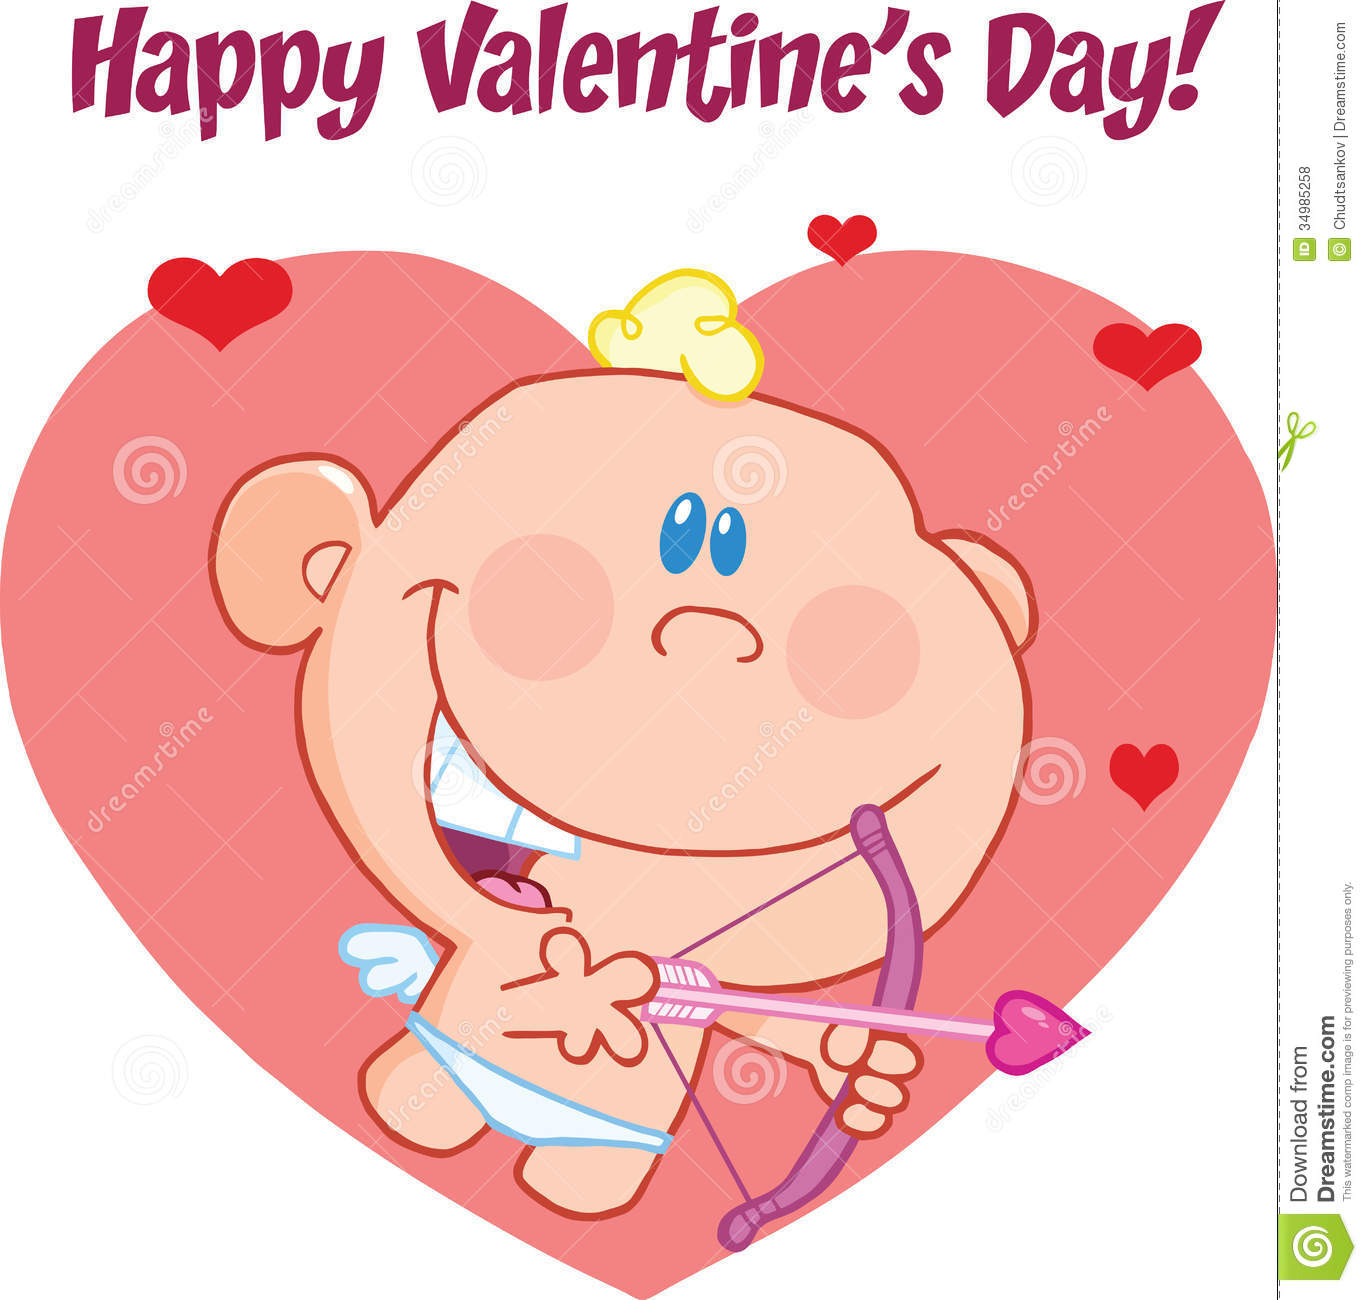 Cartoon Characters Valentines Day : Happy valentine s day greeting with cute baby cupid flying